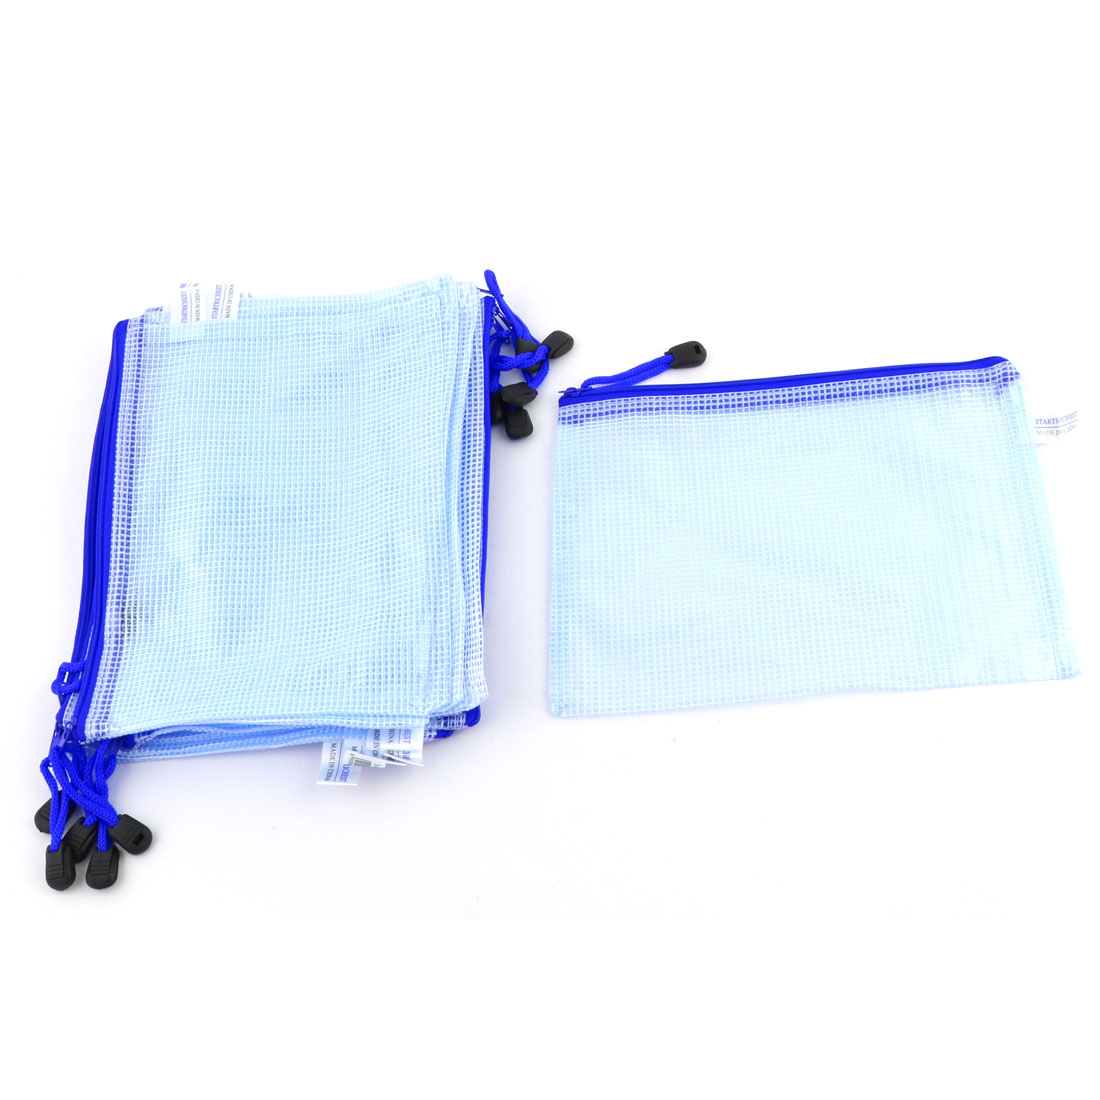 Office School Water Resistant A5 Document Stationery Zipper File Bag Light Blue 12 Pcs